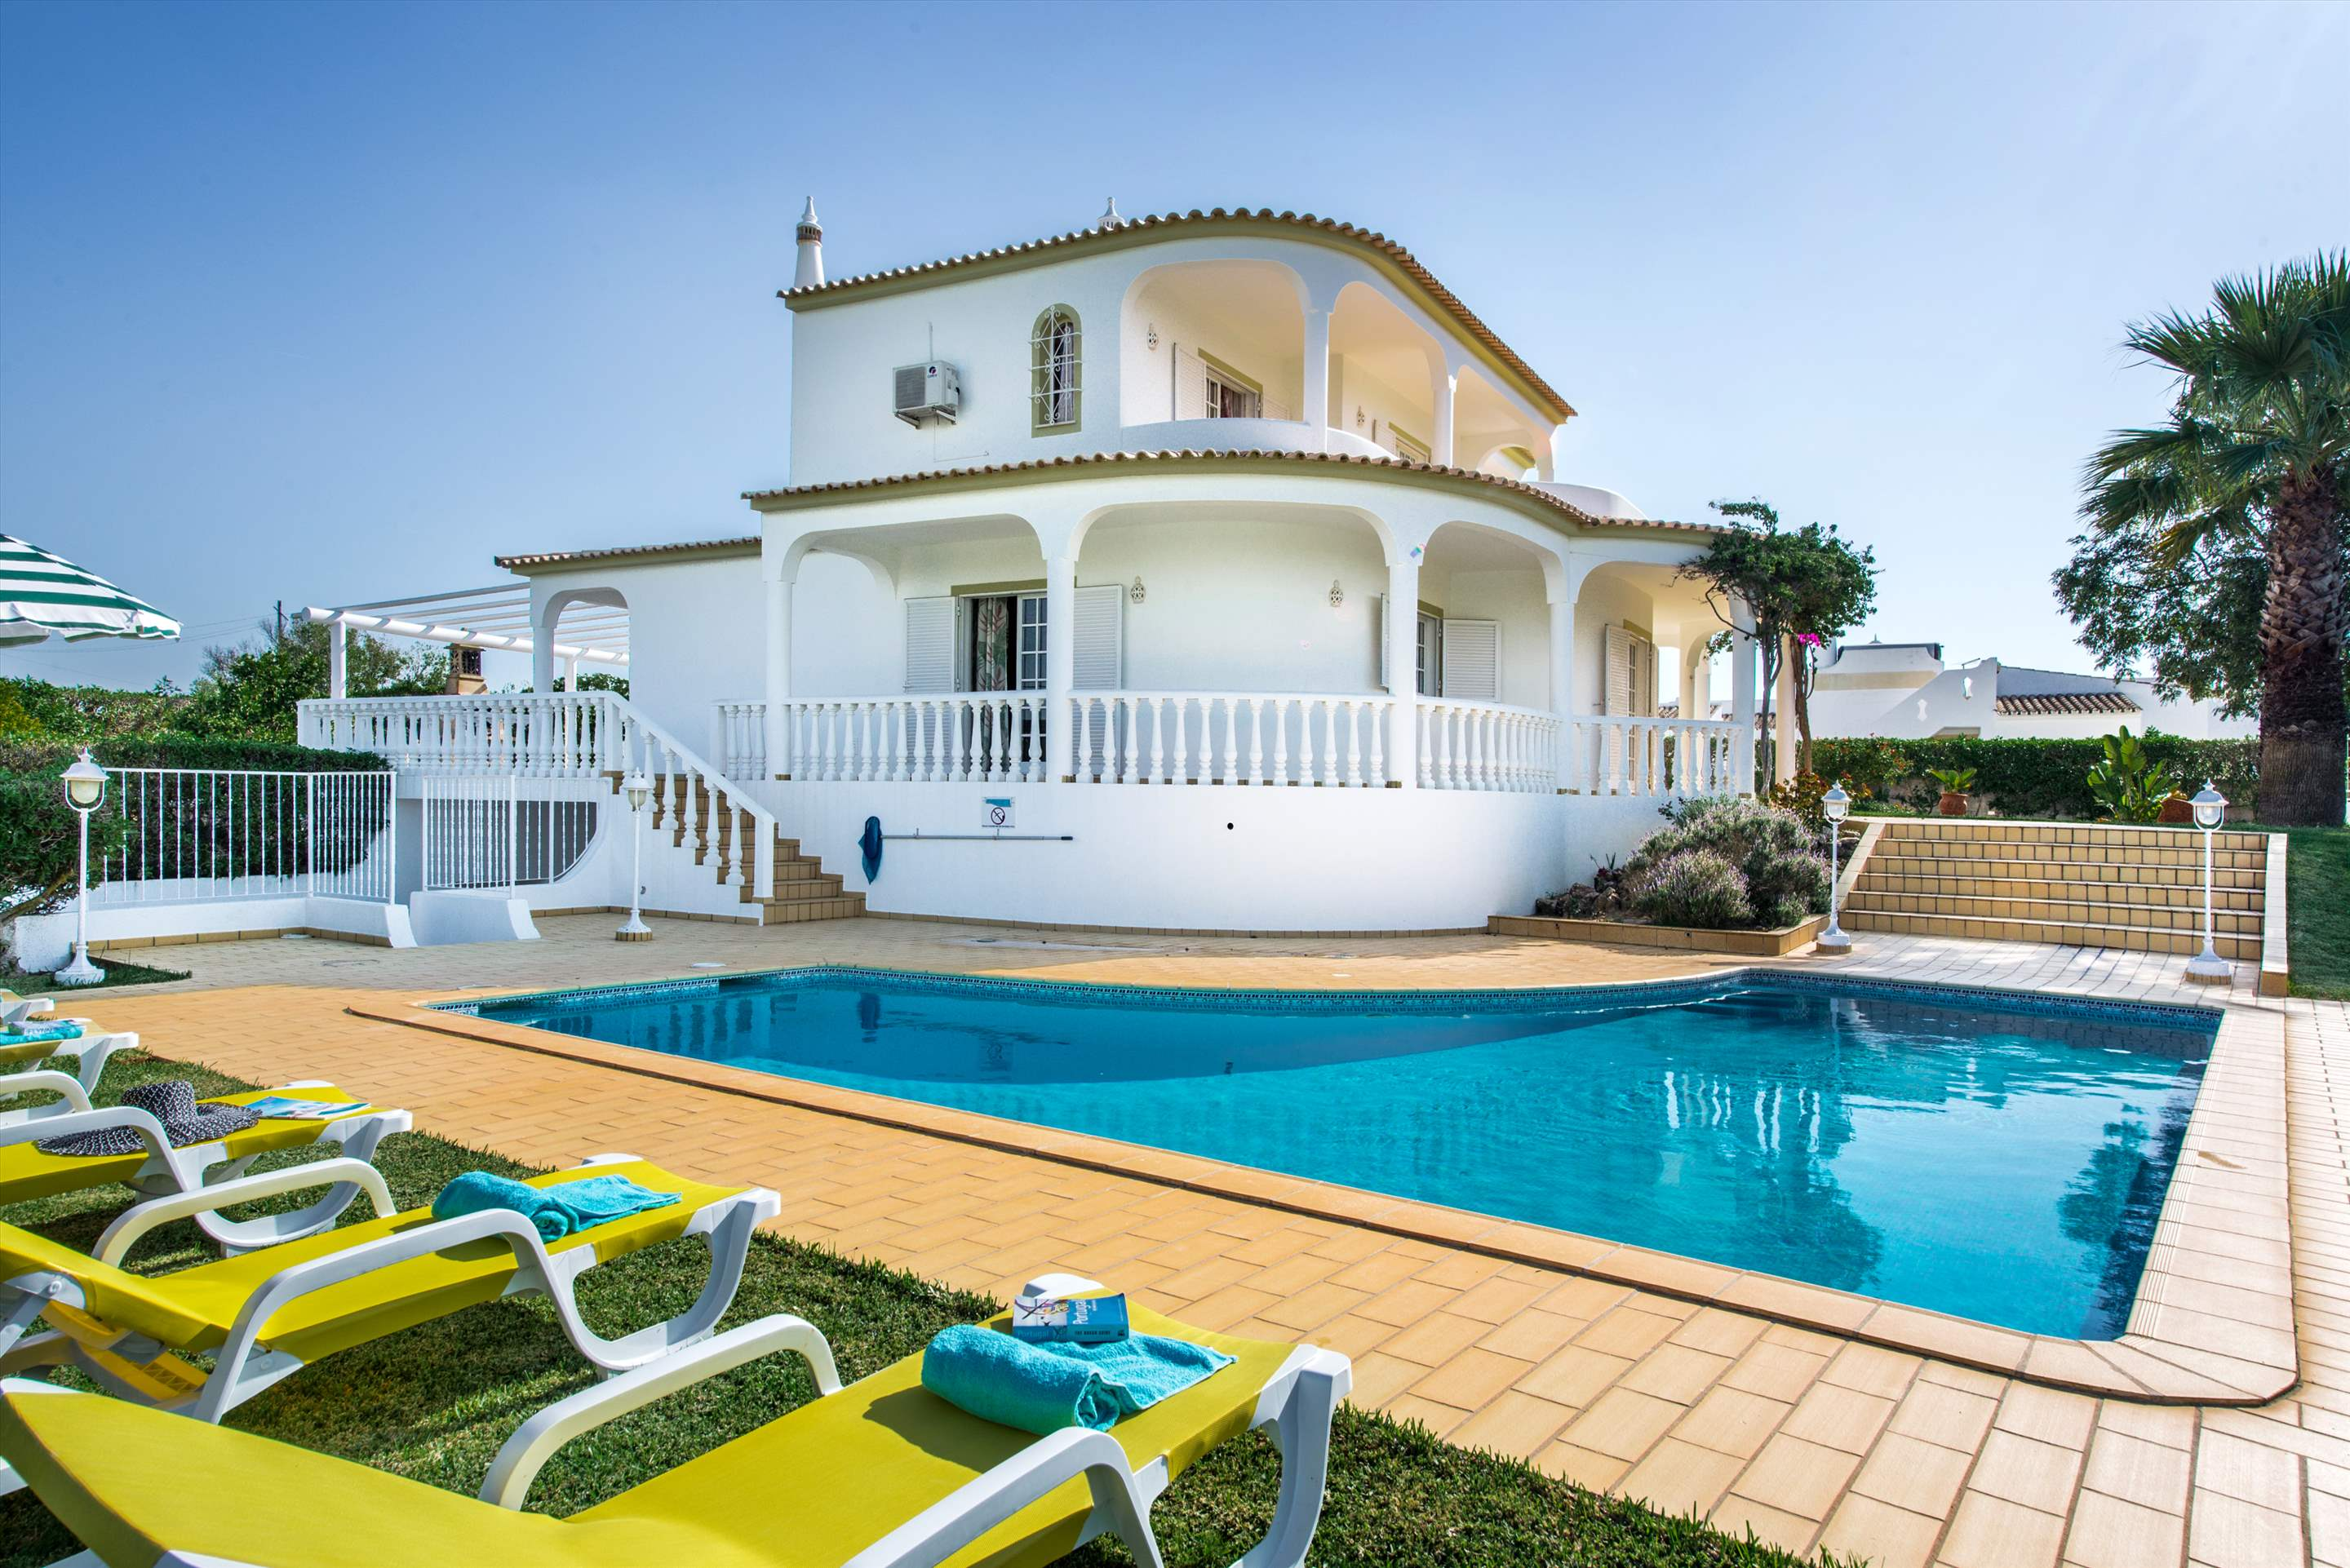 Villa Marco Real, 7-8 persons rate, 4 bedroom villa in Gale, Vale da Parra and Guia, Algarve Photo #1